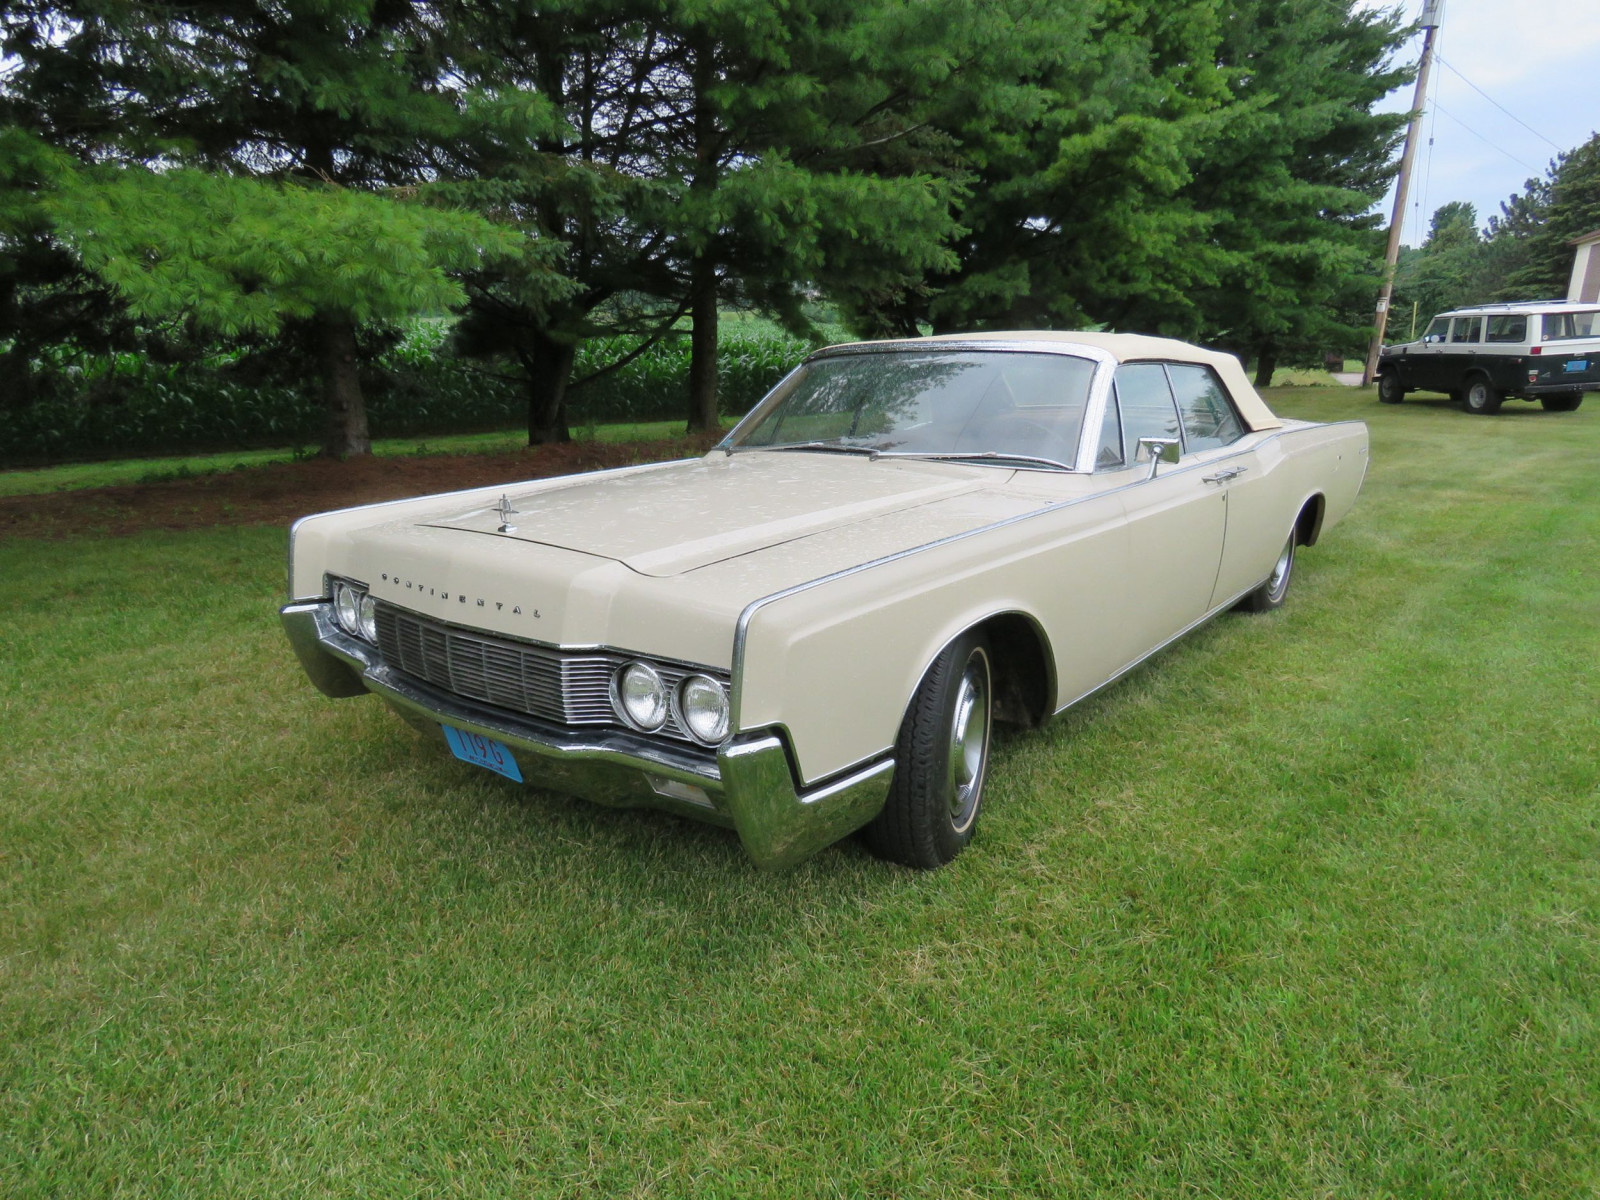 1967 Lincoln Continental 4dr Suicide Convertible - Image 2